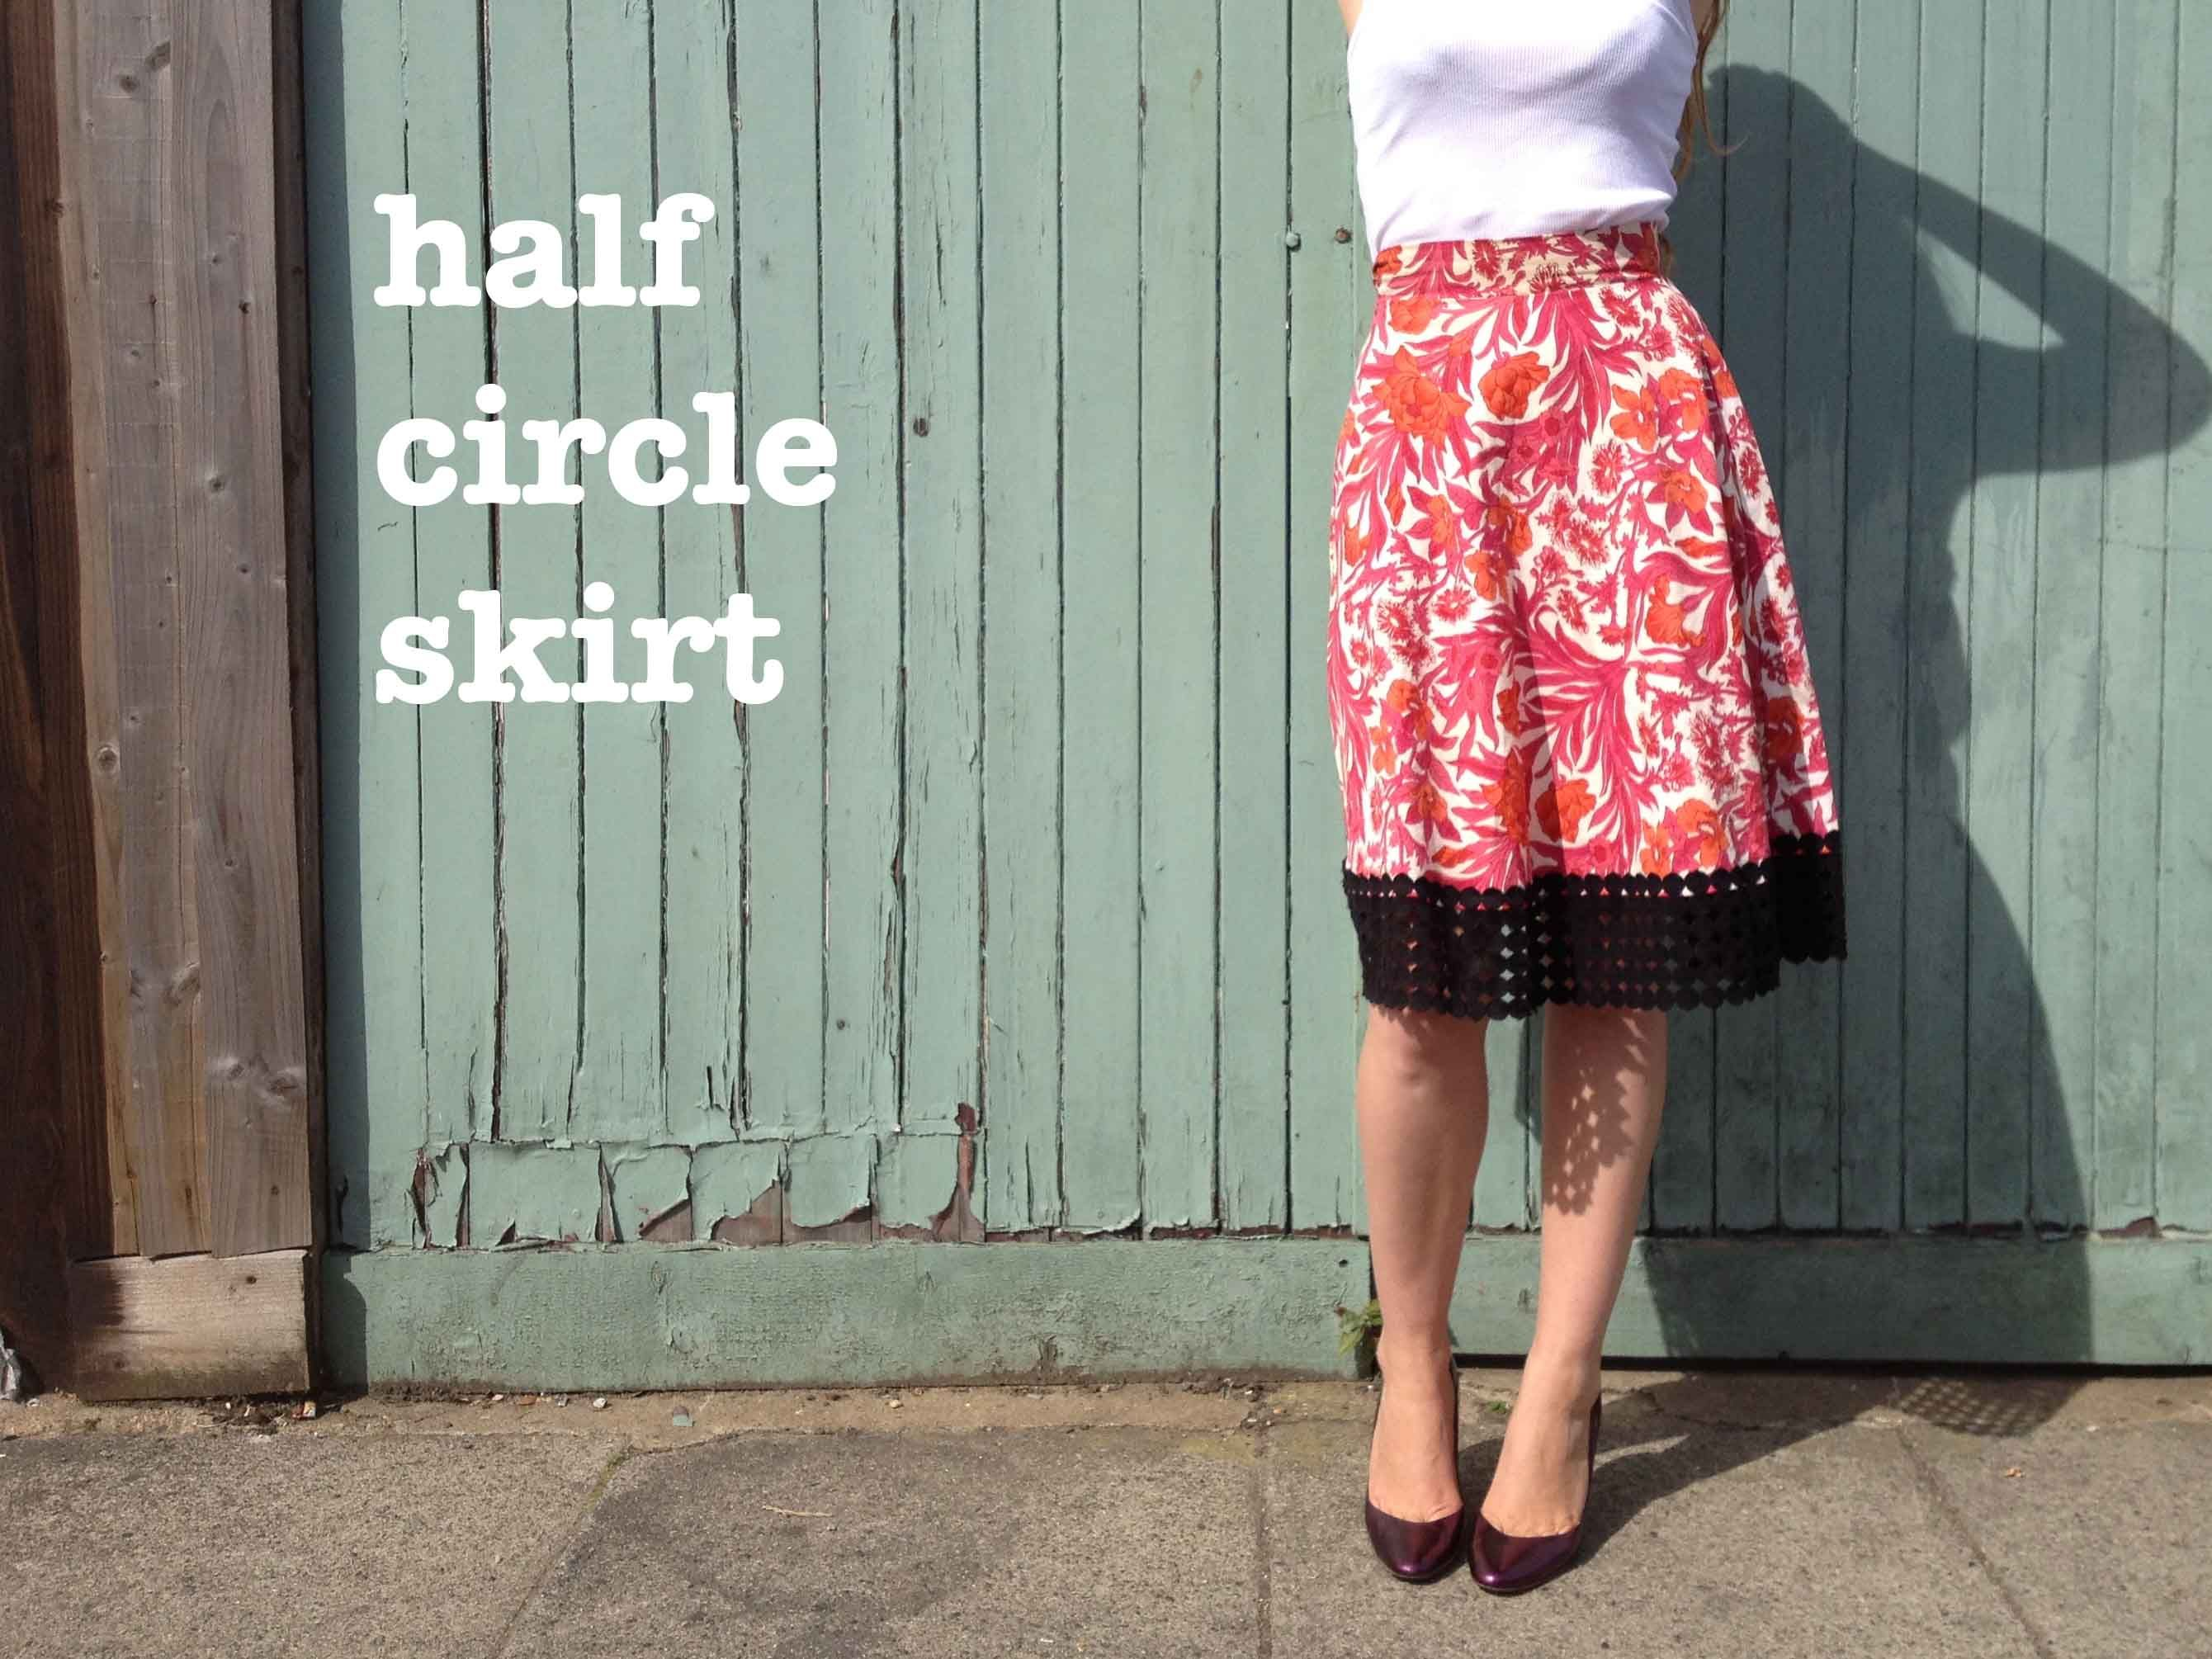 How to make a half circle skirt the stitching scientist circle skirt maths explained bankloansurffo Image collections